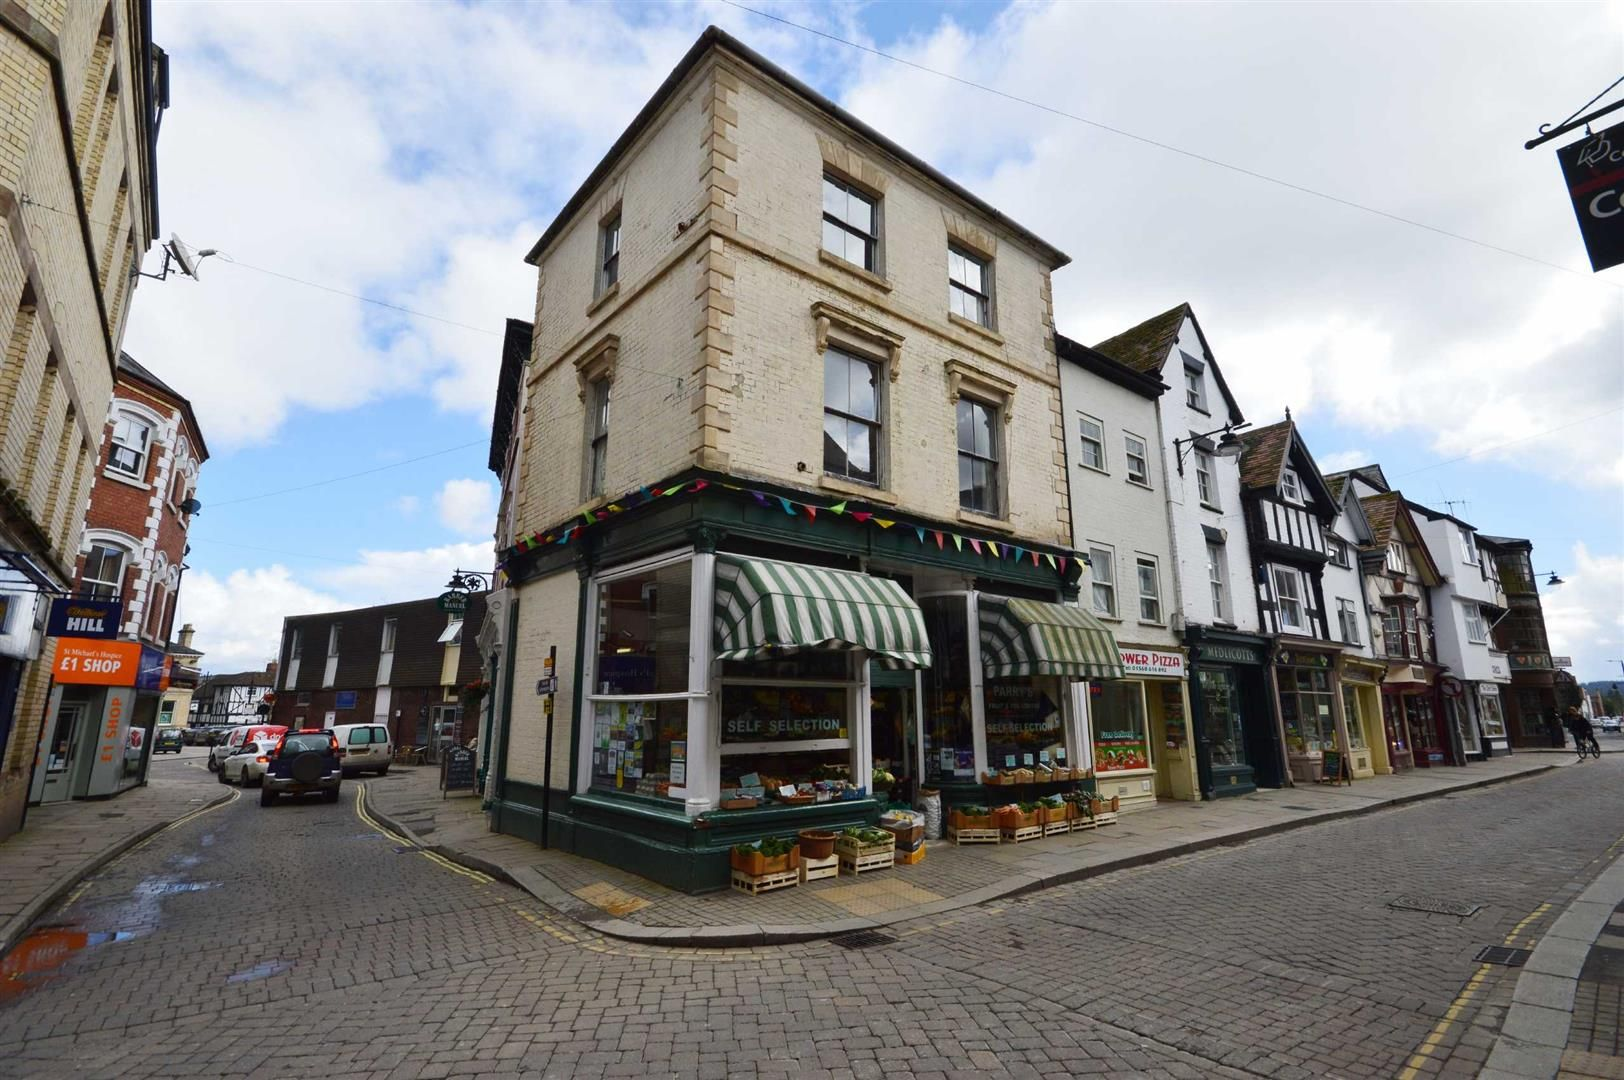 3 bed  for sale in Leominster 1